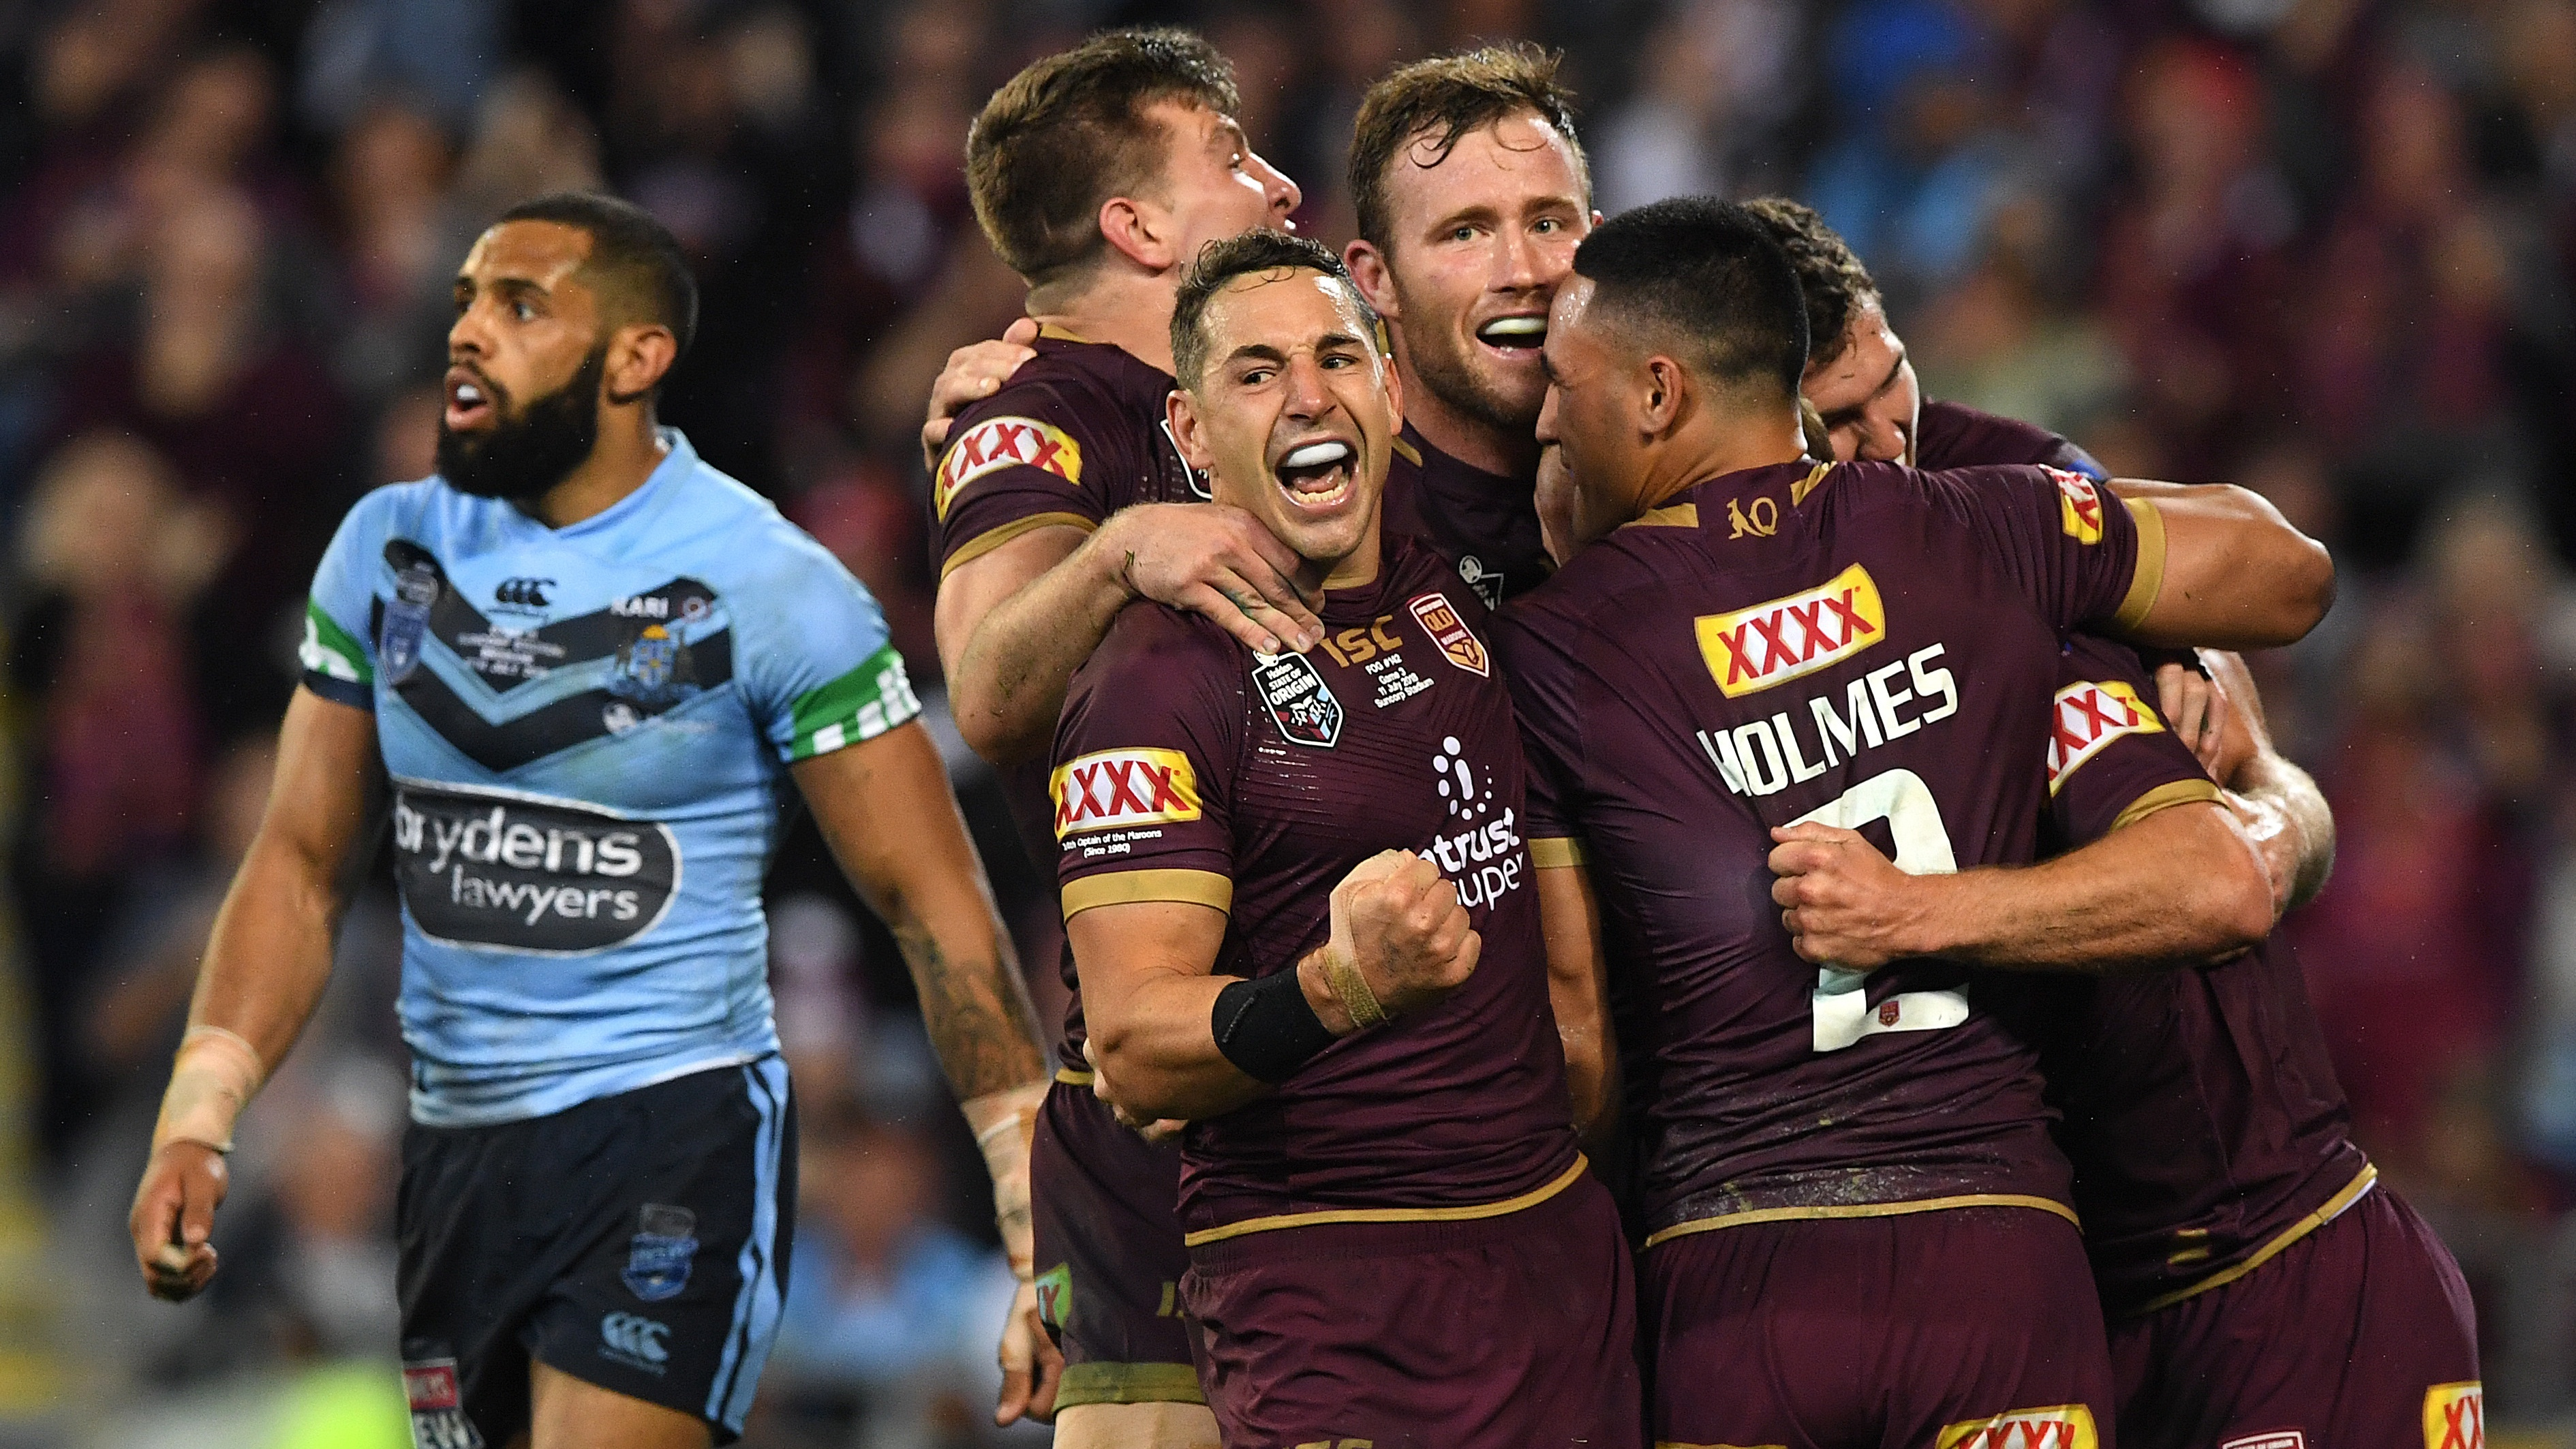 State of Origin Highlights: QLD v NSW - Game III